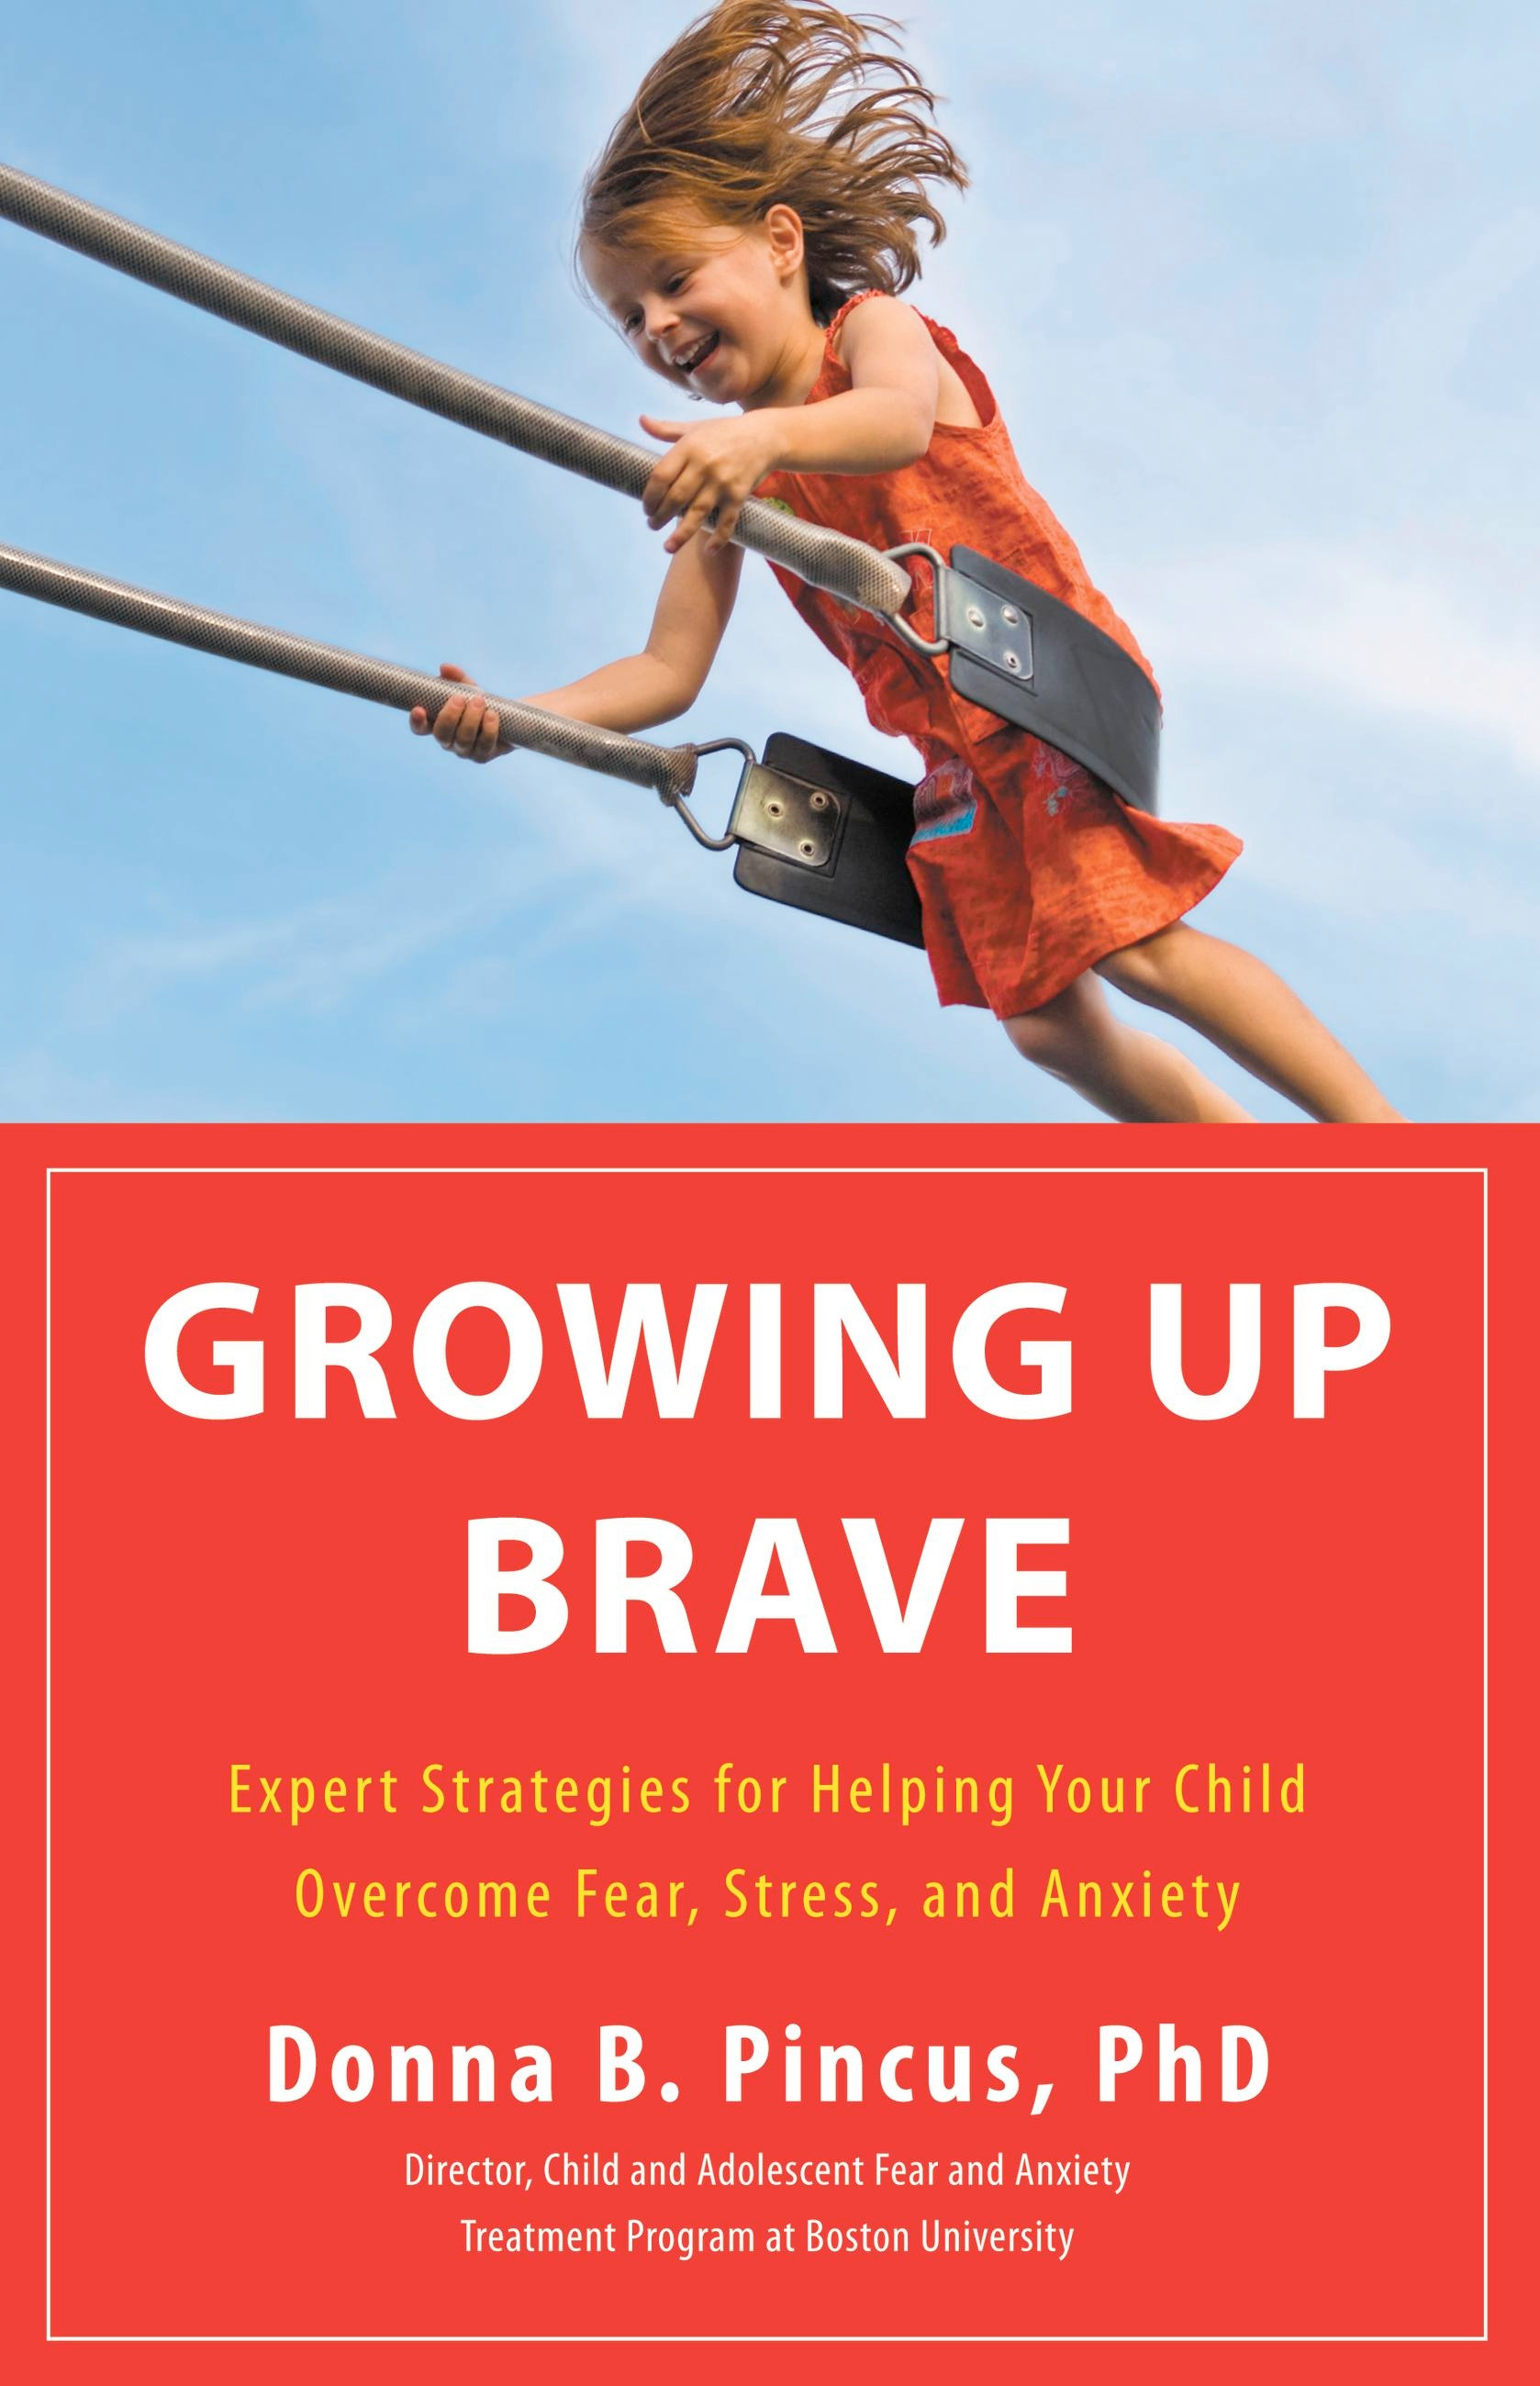 Growing up Brave by Donna Pincus, Ph.D